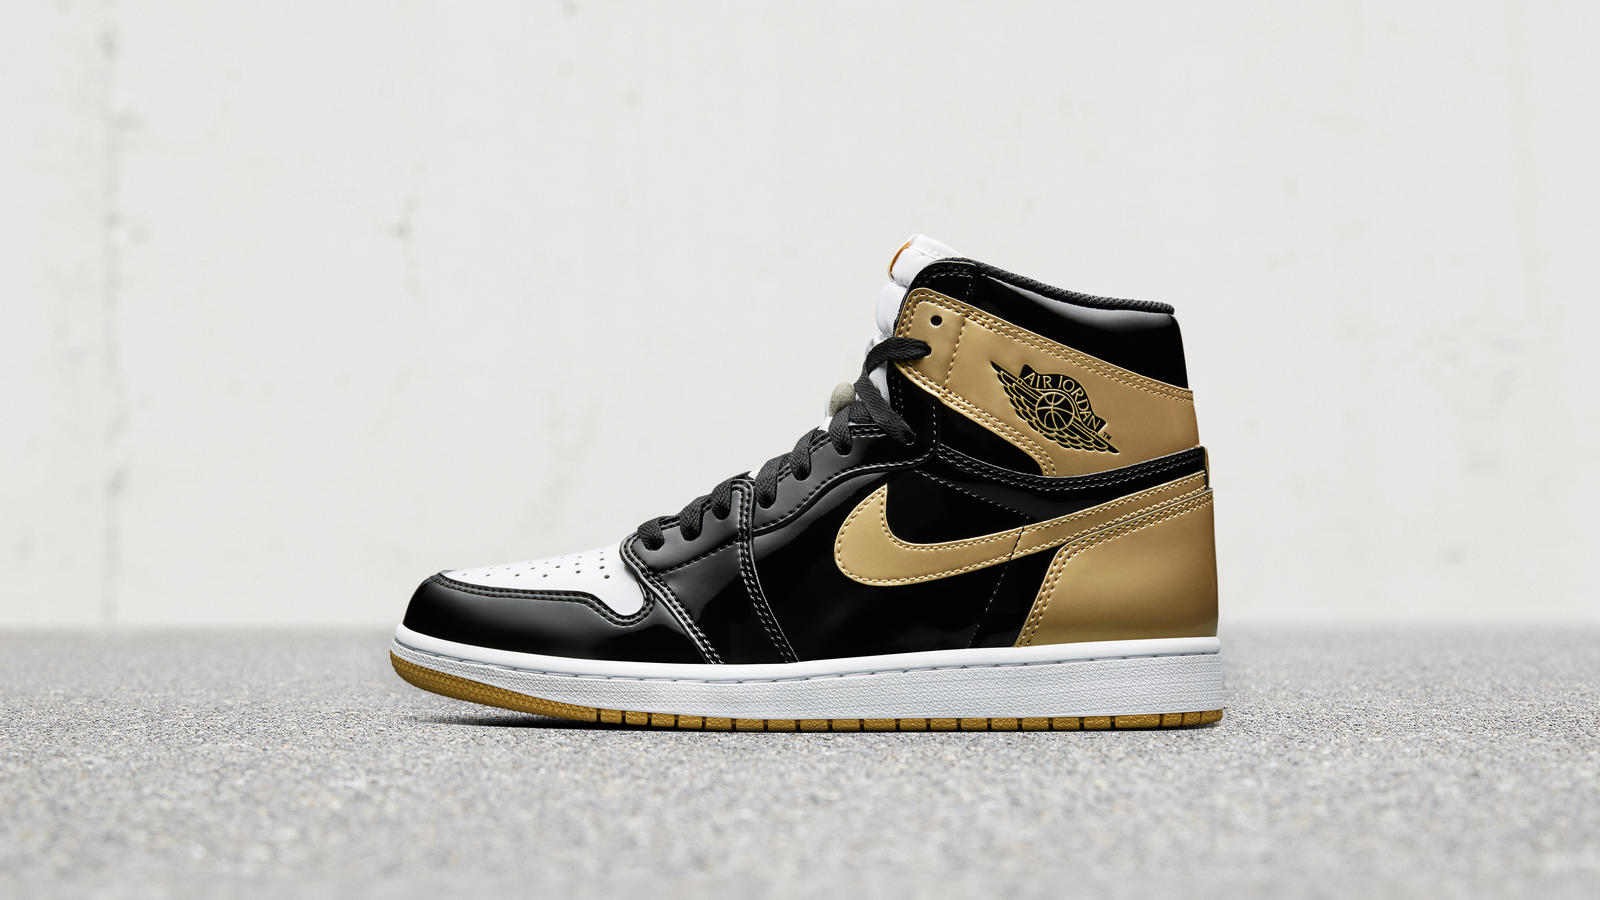 Gold jordan 1 top 3 01 hd 1600